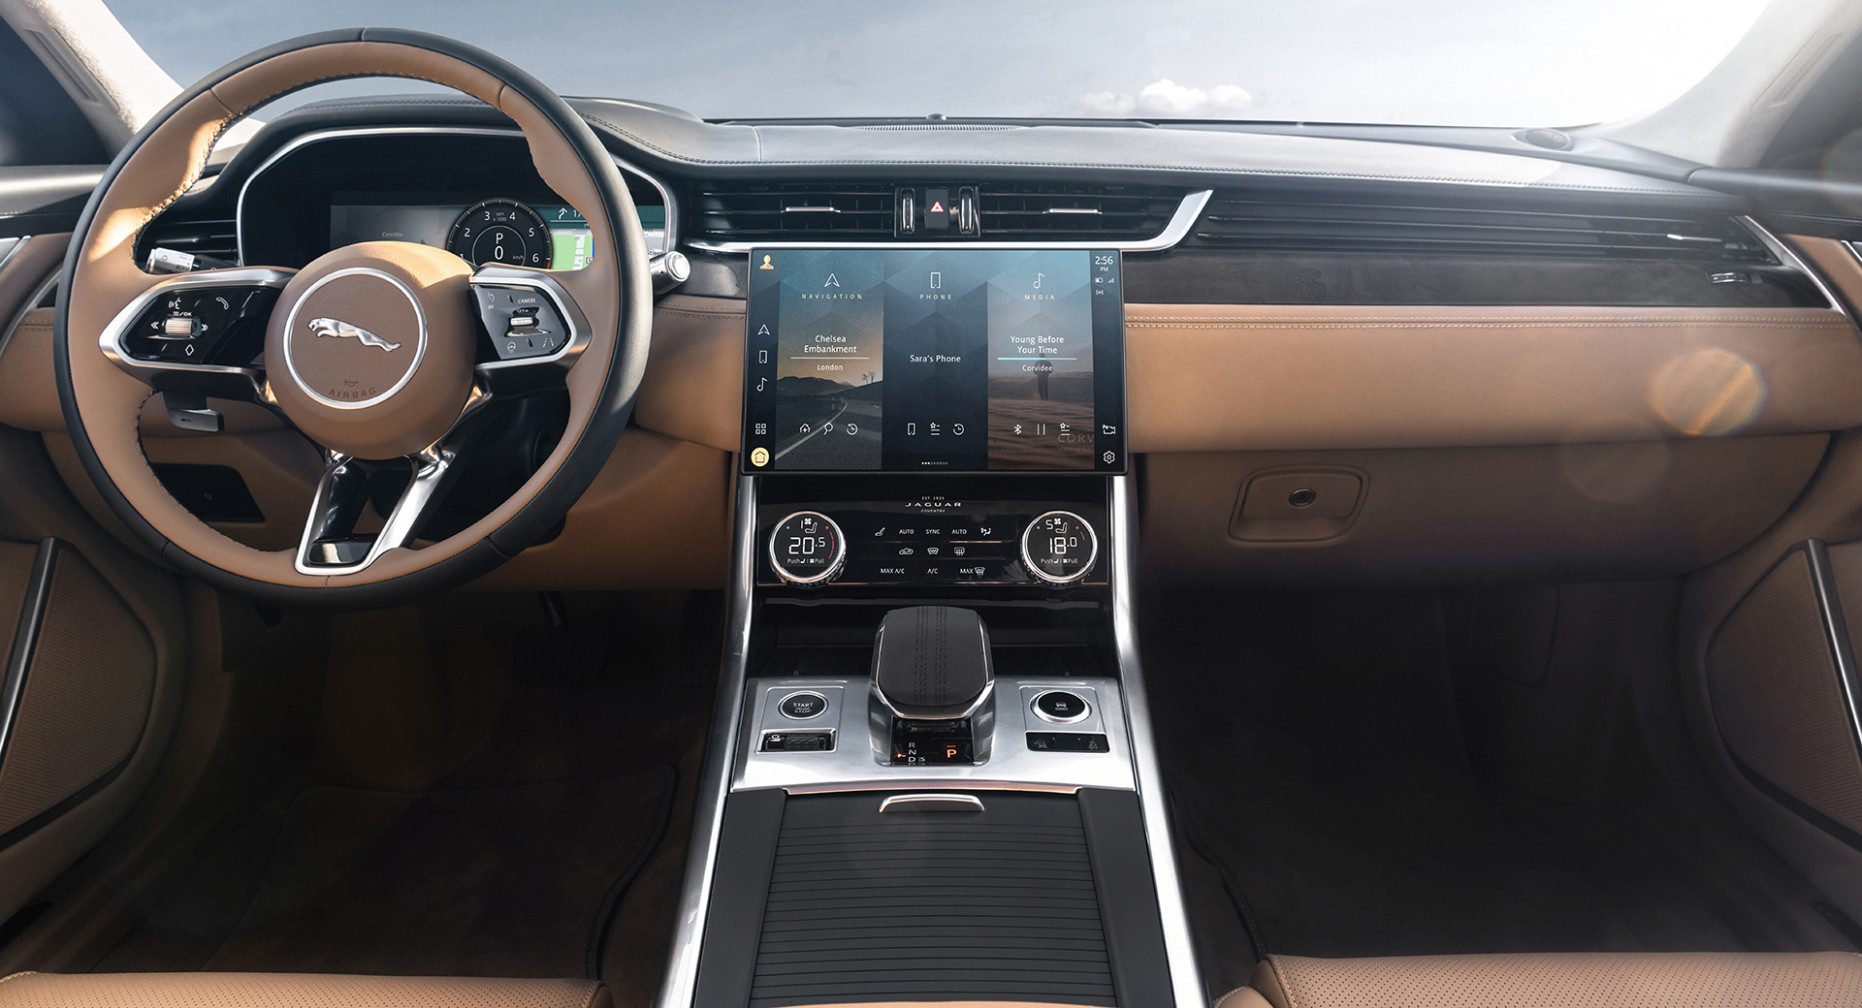 Redesign and Review New Jaguar Xe 2022 Interior